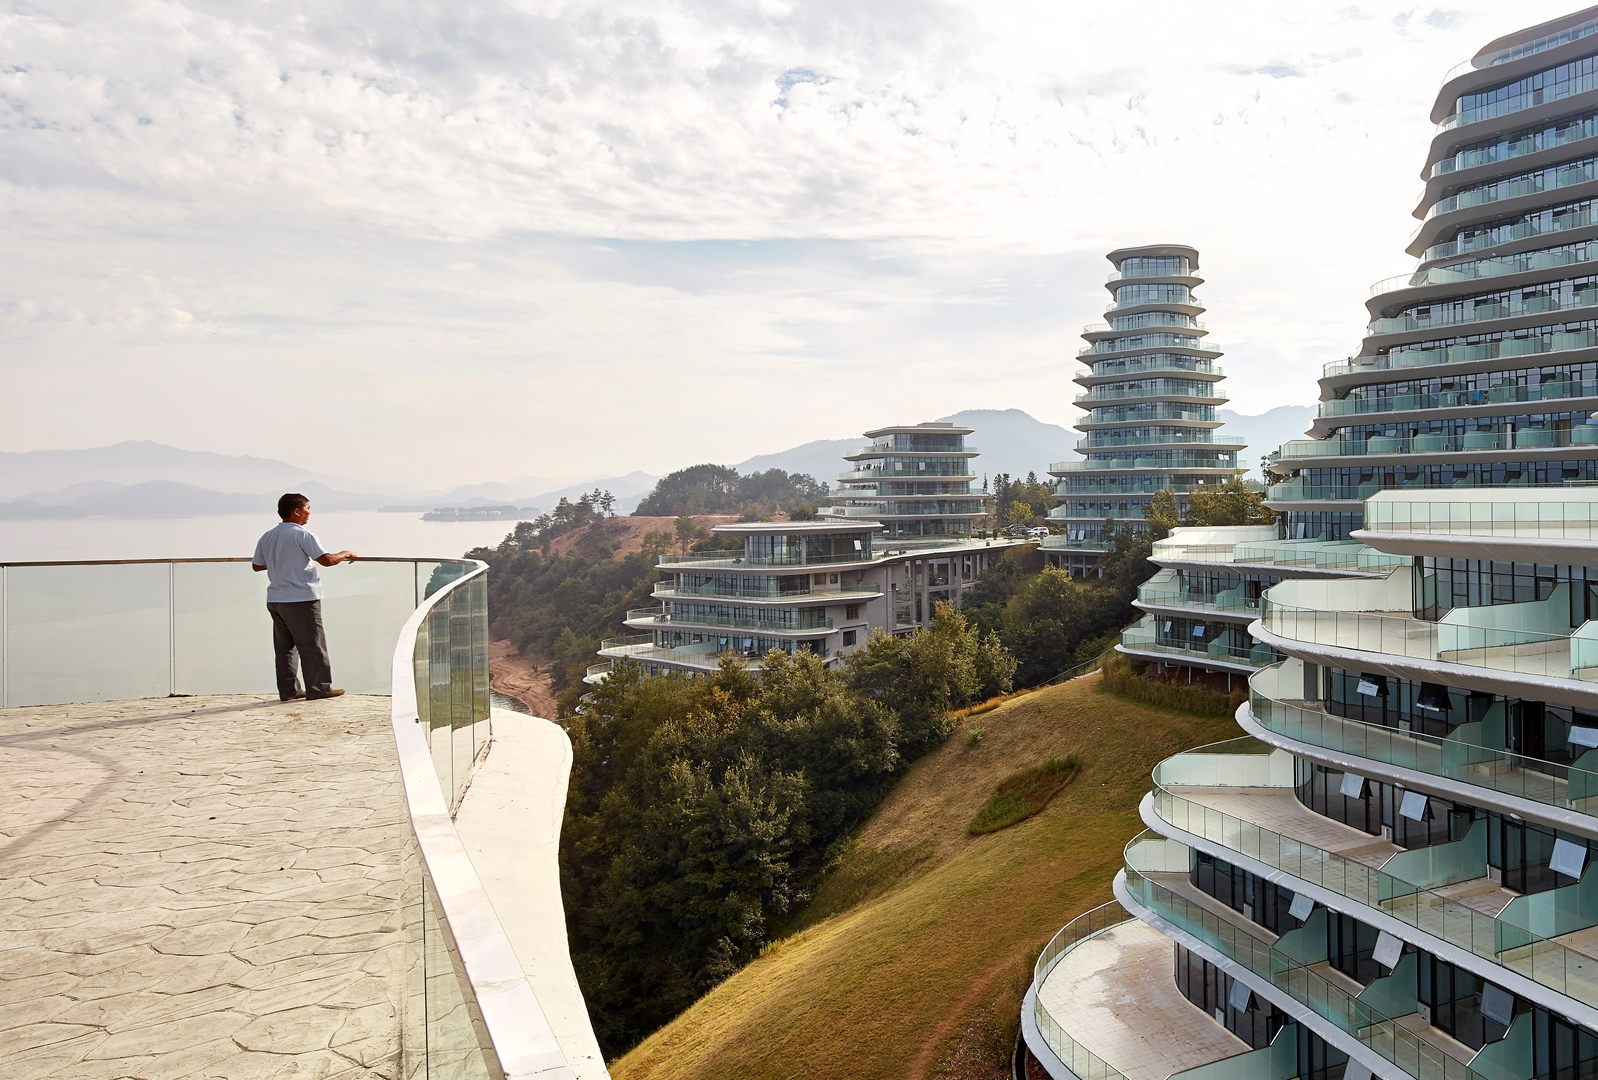 MAD_Huangshan Mountain Village_21_by Hufton+Crow (Copy)